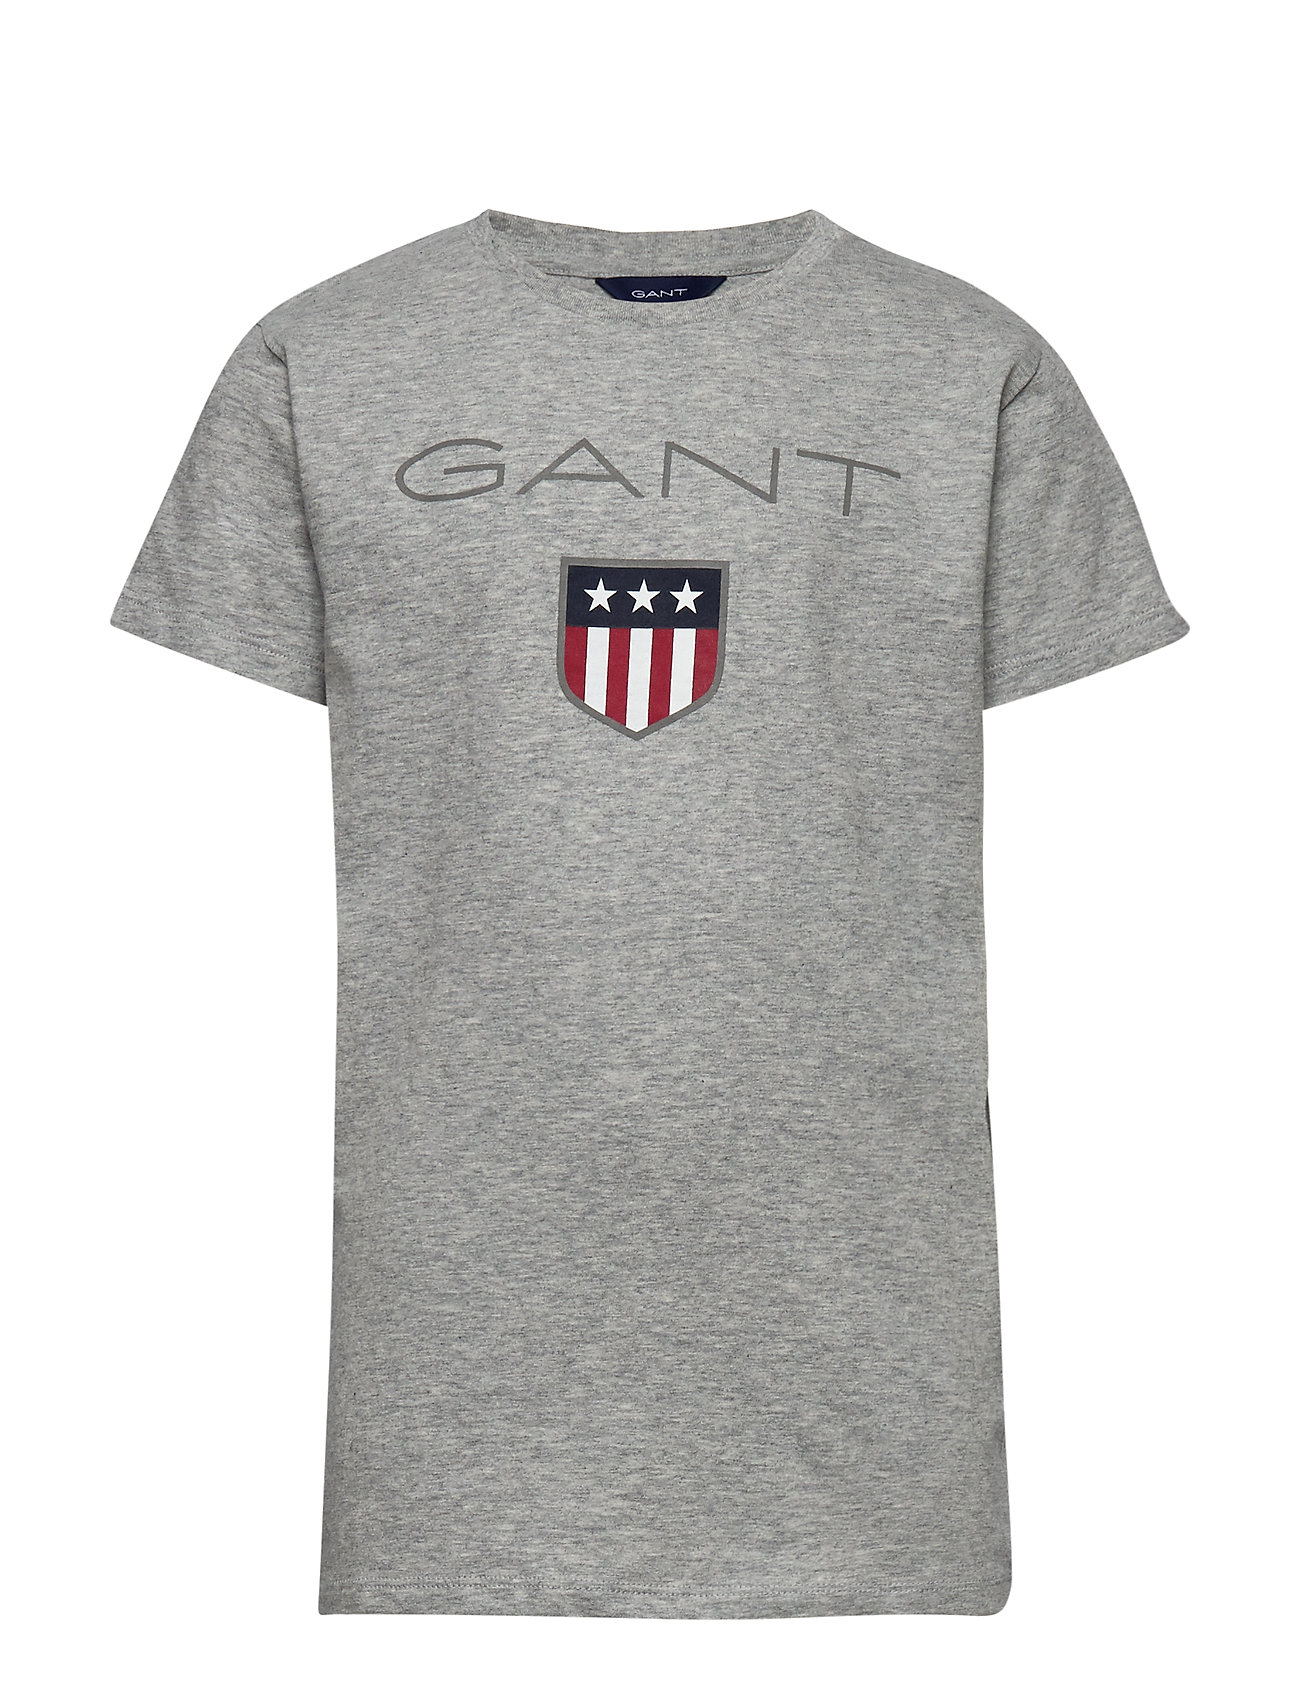 Gant SHIELD SS T-SHIRT - LIGHT GREY MELANGE